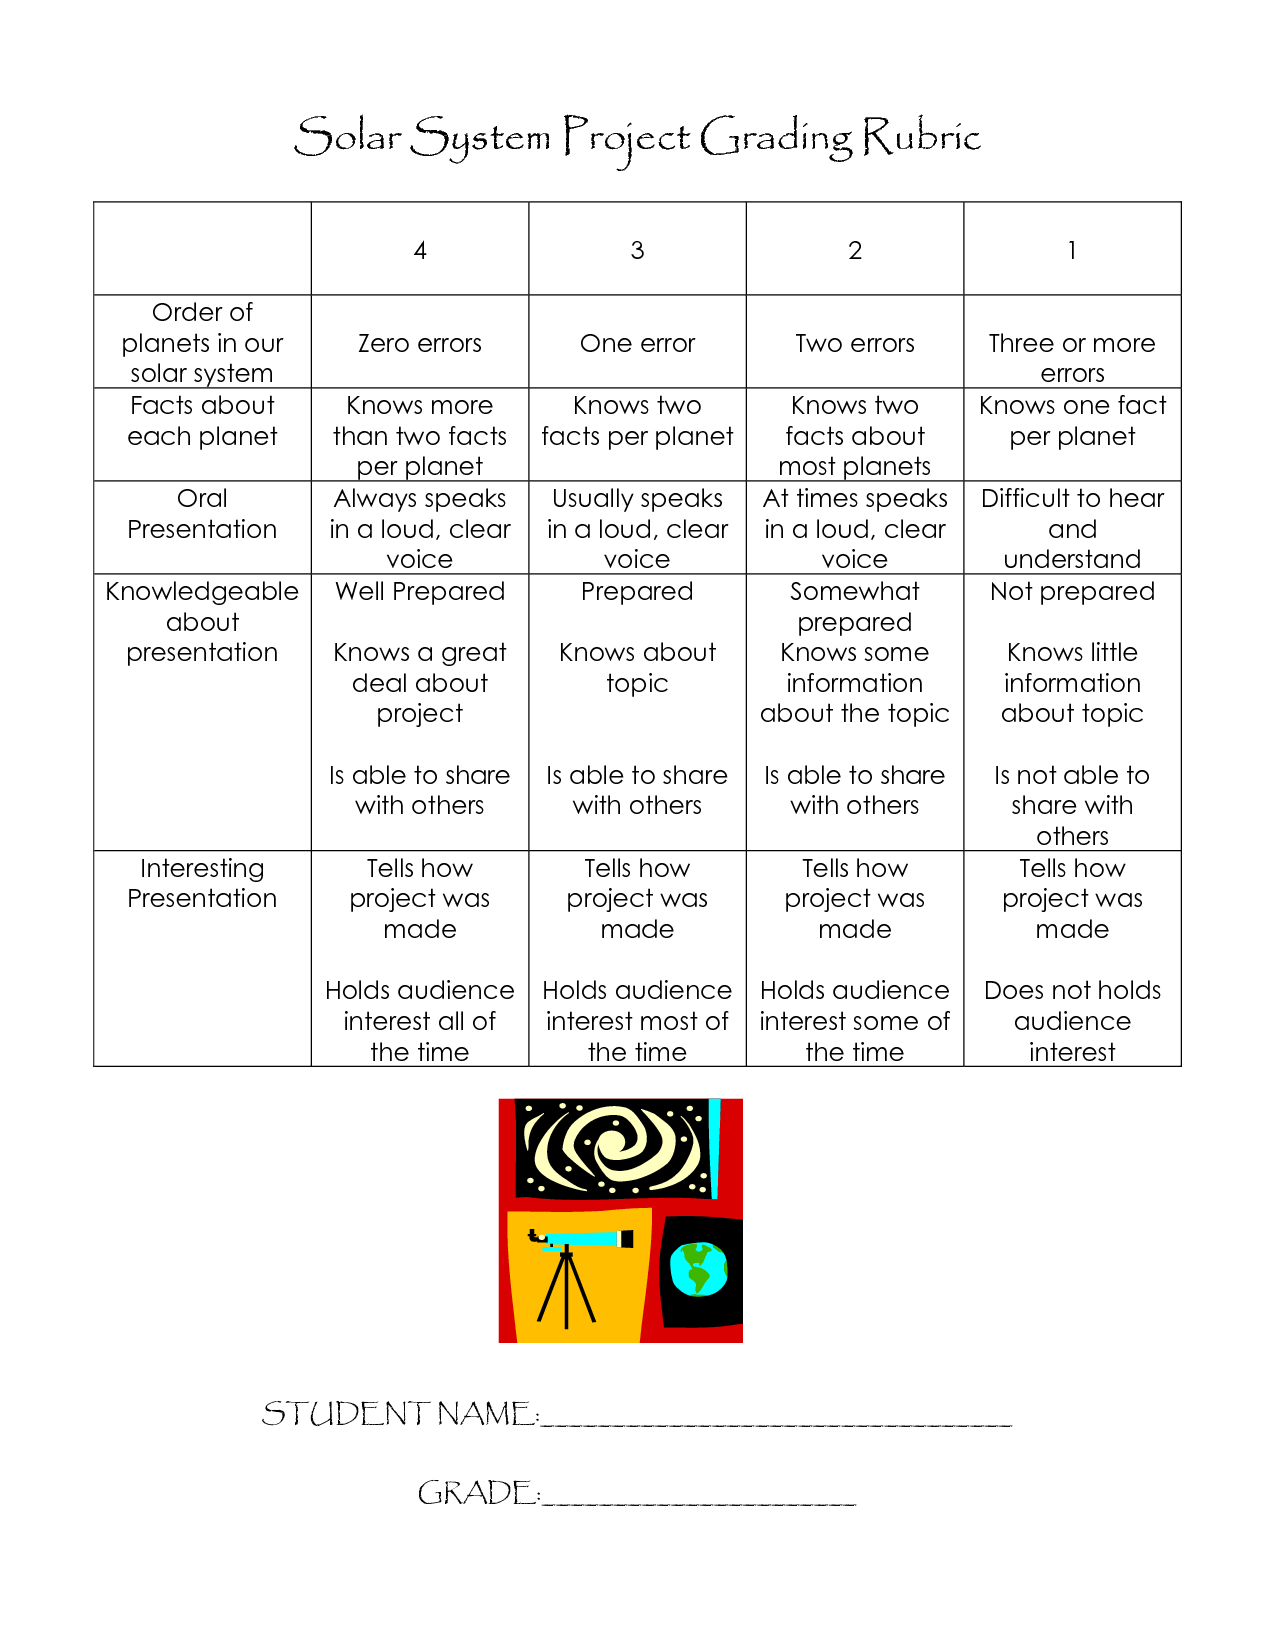 Solar System Project Rubric Solar System Project Grading Rubric